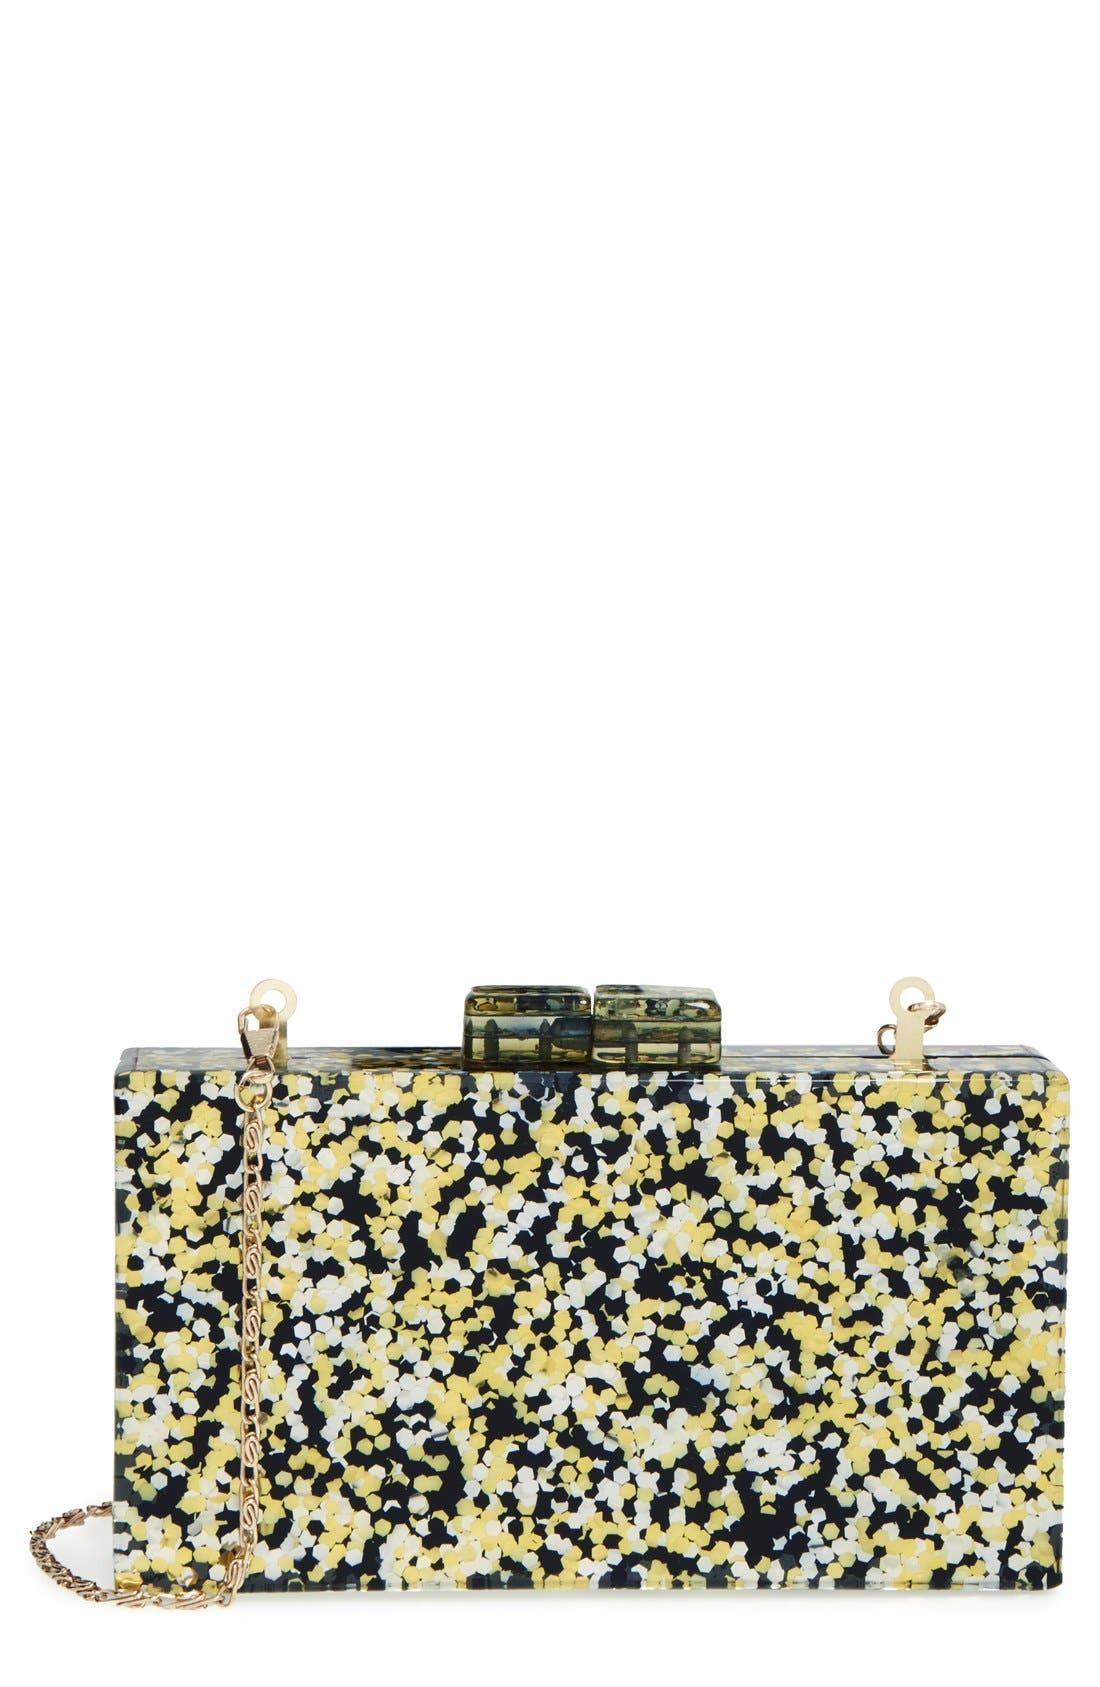 Couture Box Clutch,                         Main,                         color, Black/ Gold